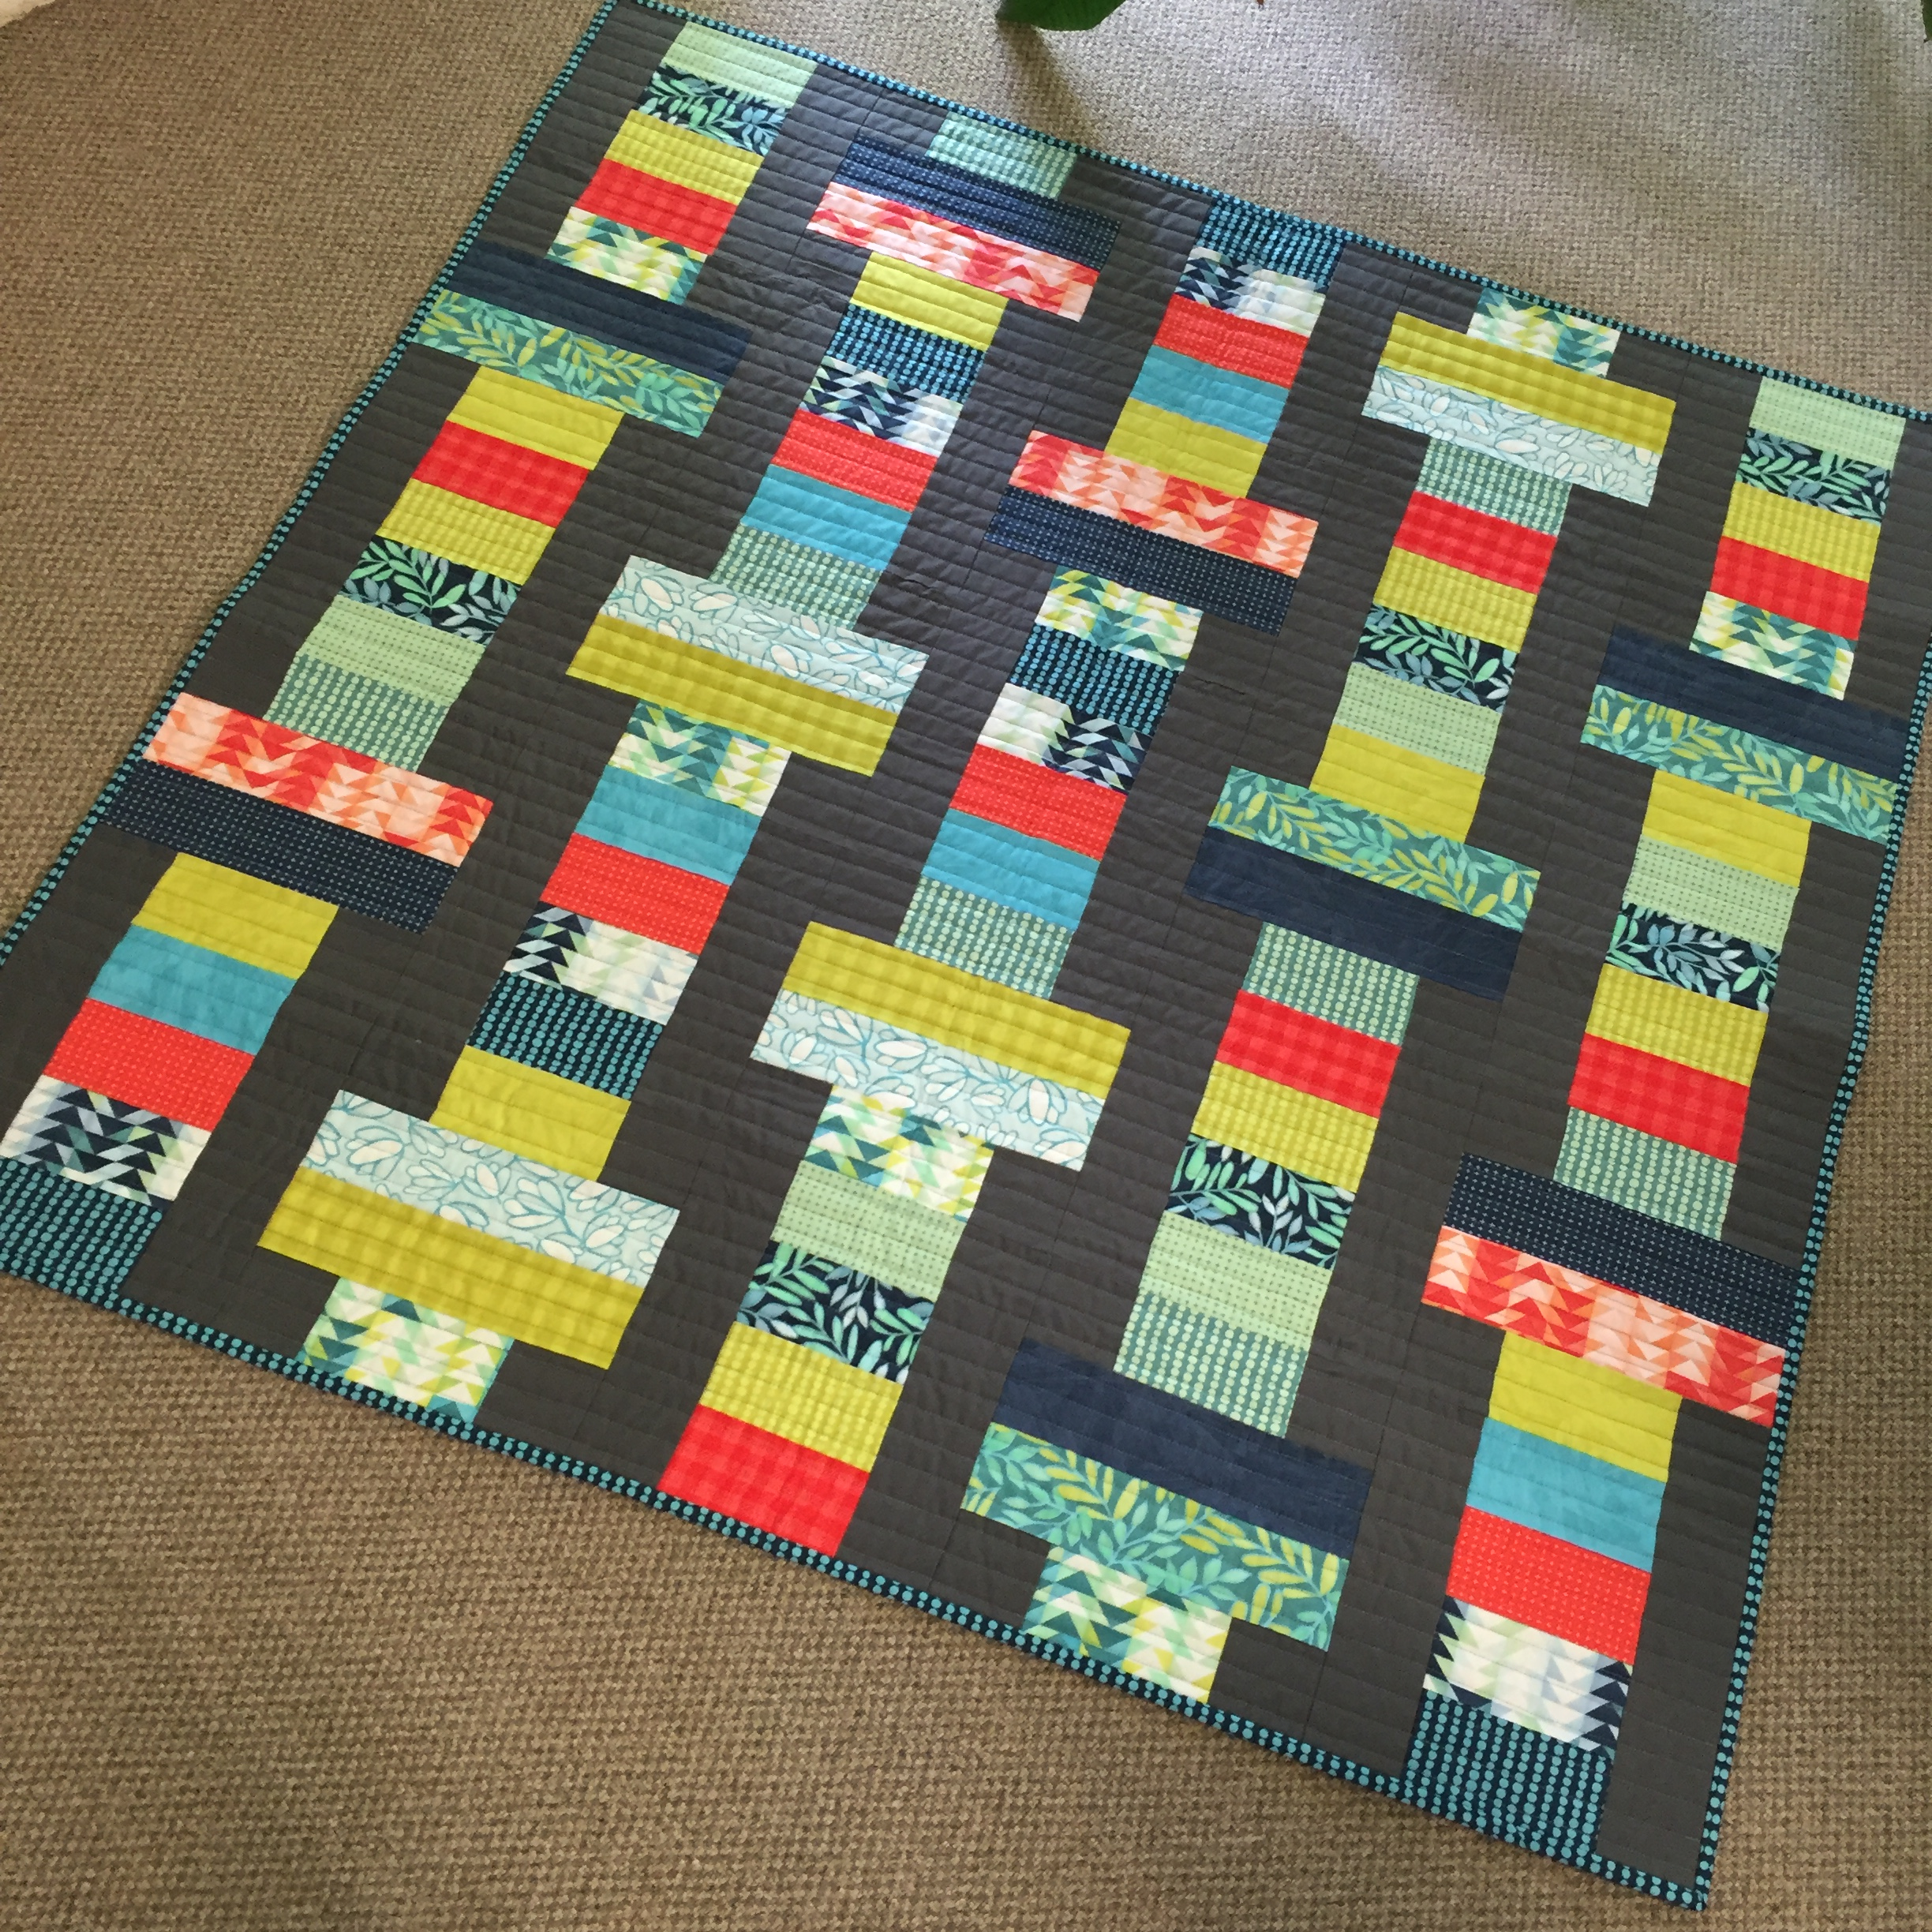 a modern binding backing mass quilt used she jelly the finished and rolls started social southeastern roll quilting cottons kona for background quilts megan runamok september guild at